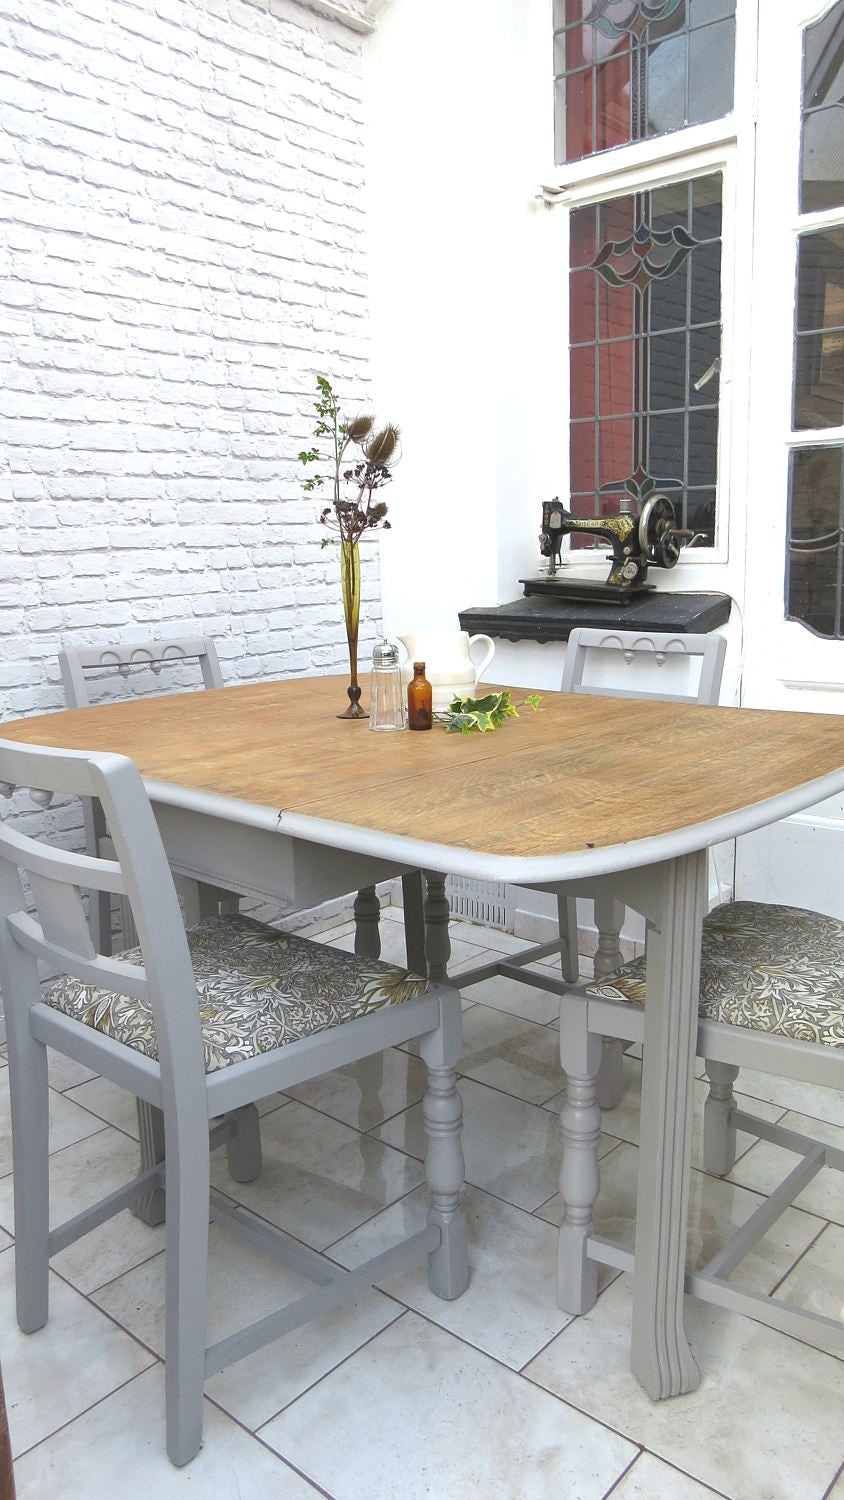 Vintage Dining Table and Chairs Set Grey William Morris